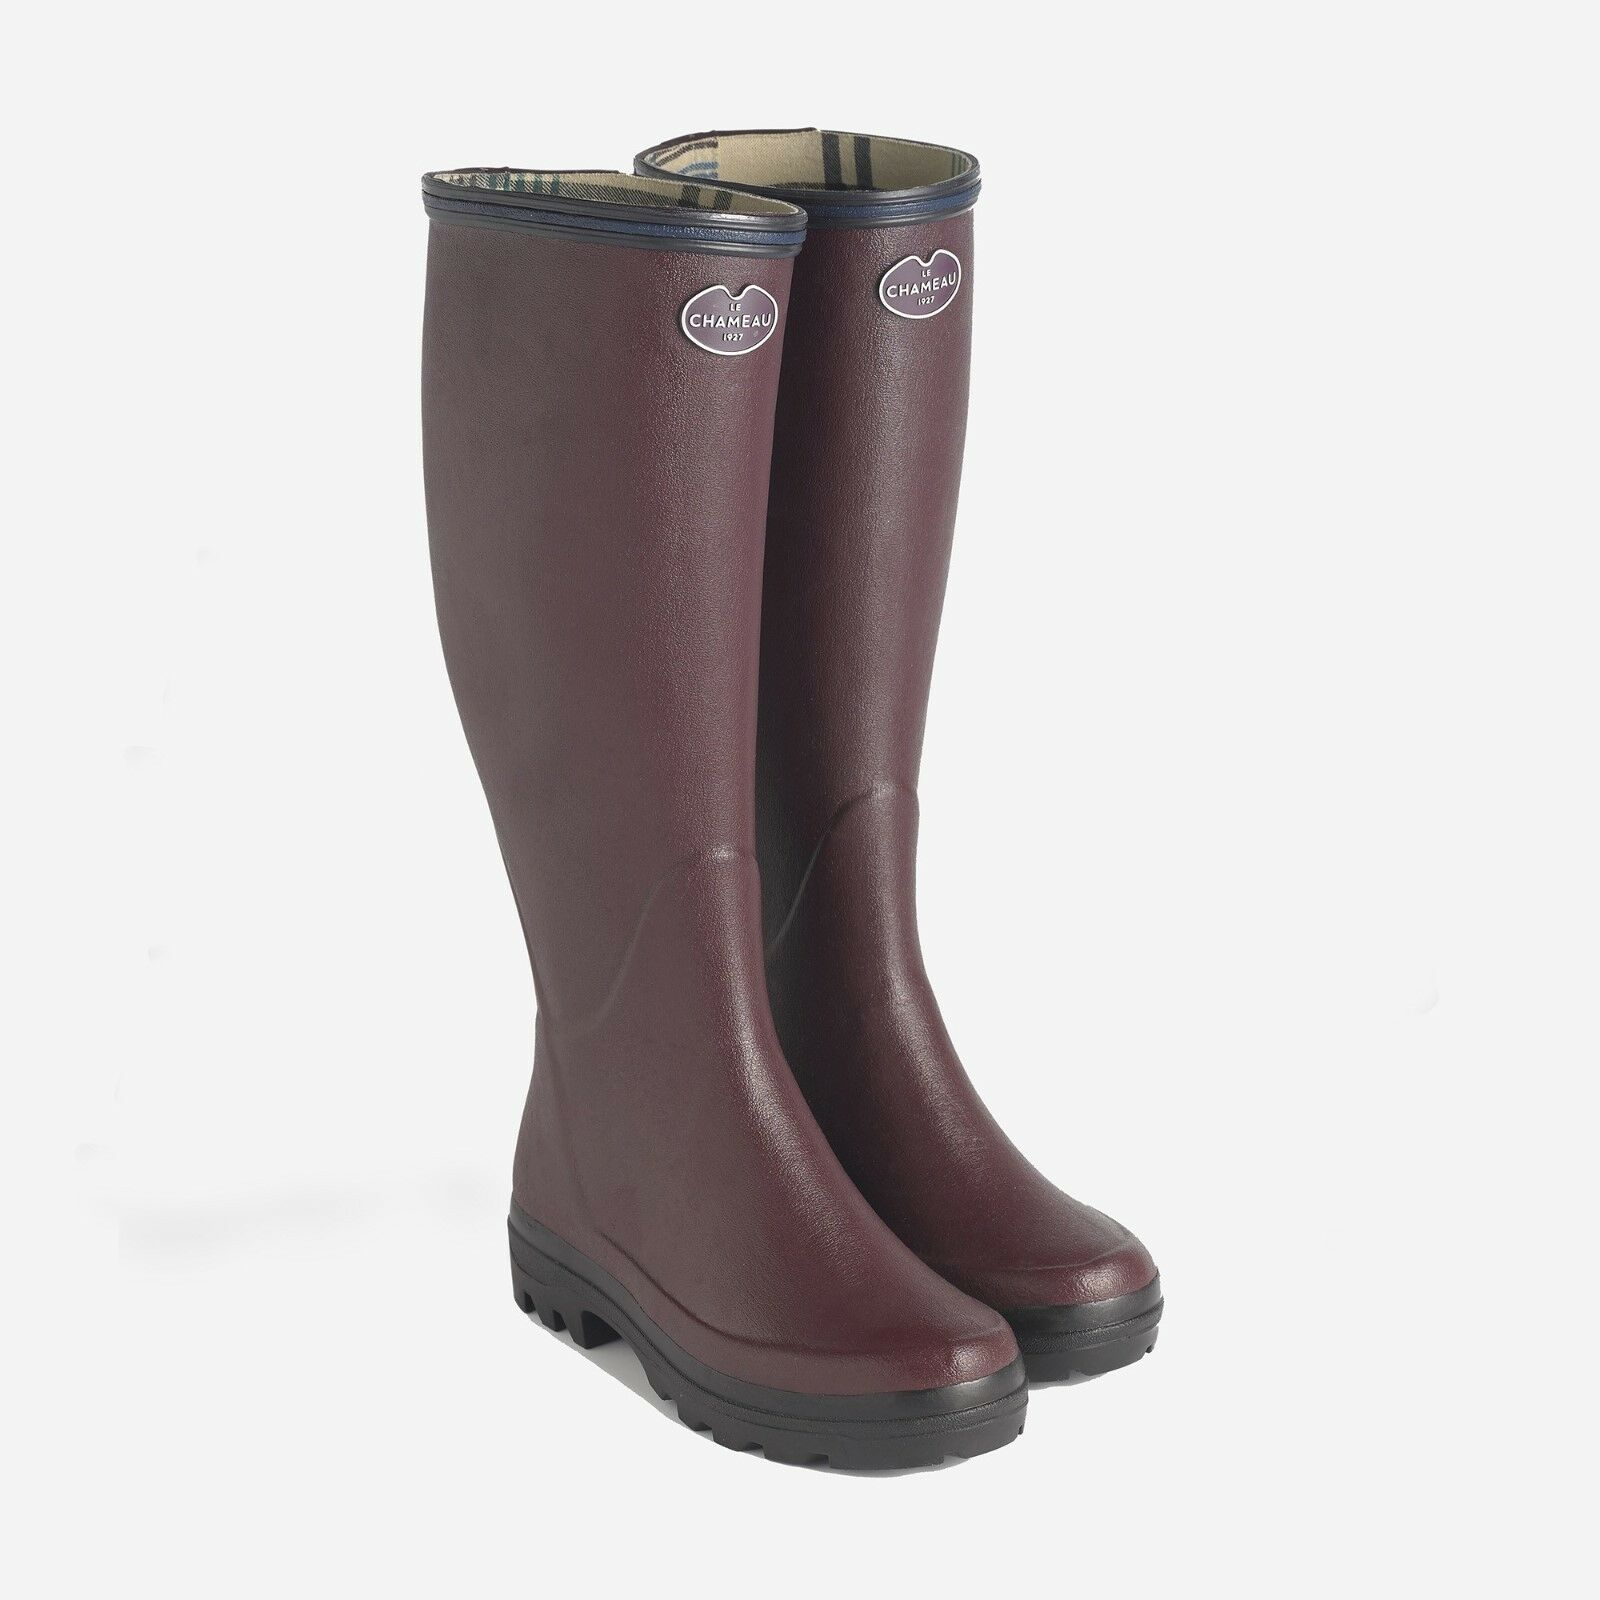 Le Chameau Giverny Cherry Ladies Cotton lined Wellingtons boots FREE UK POSTAGE